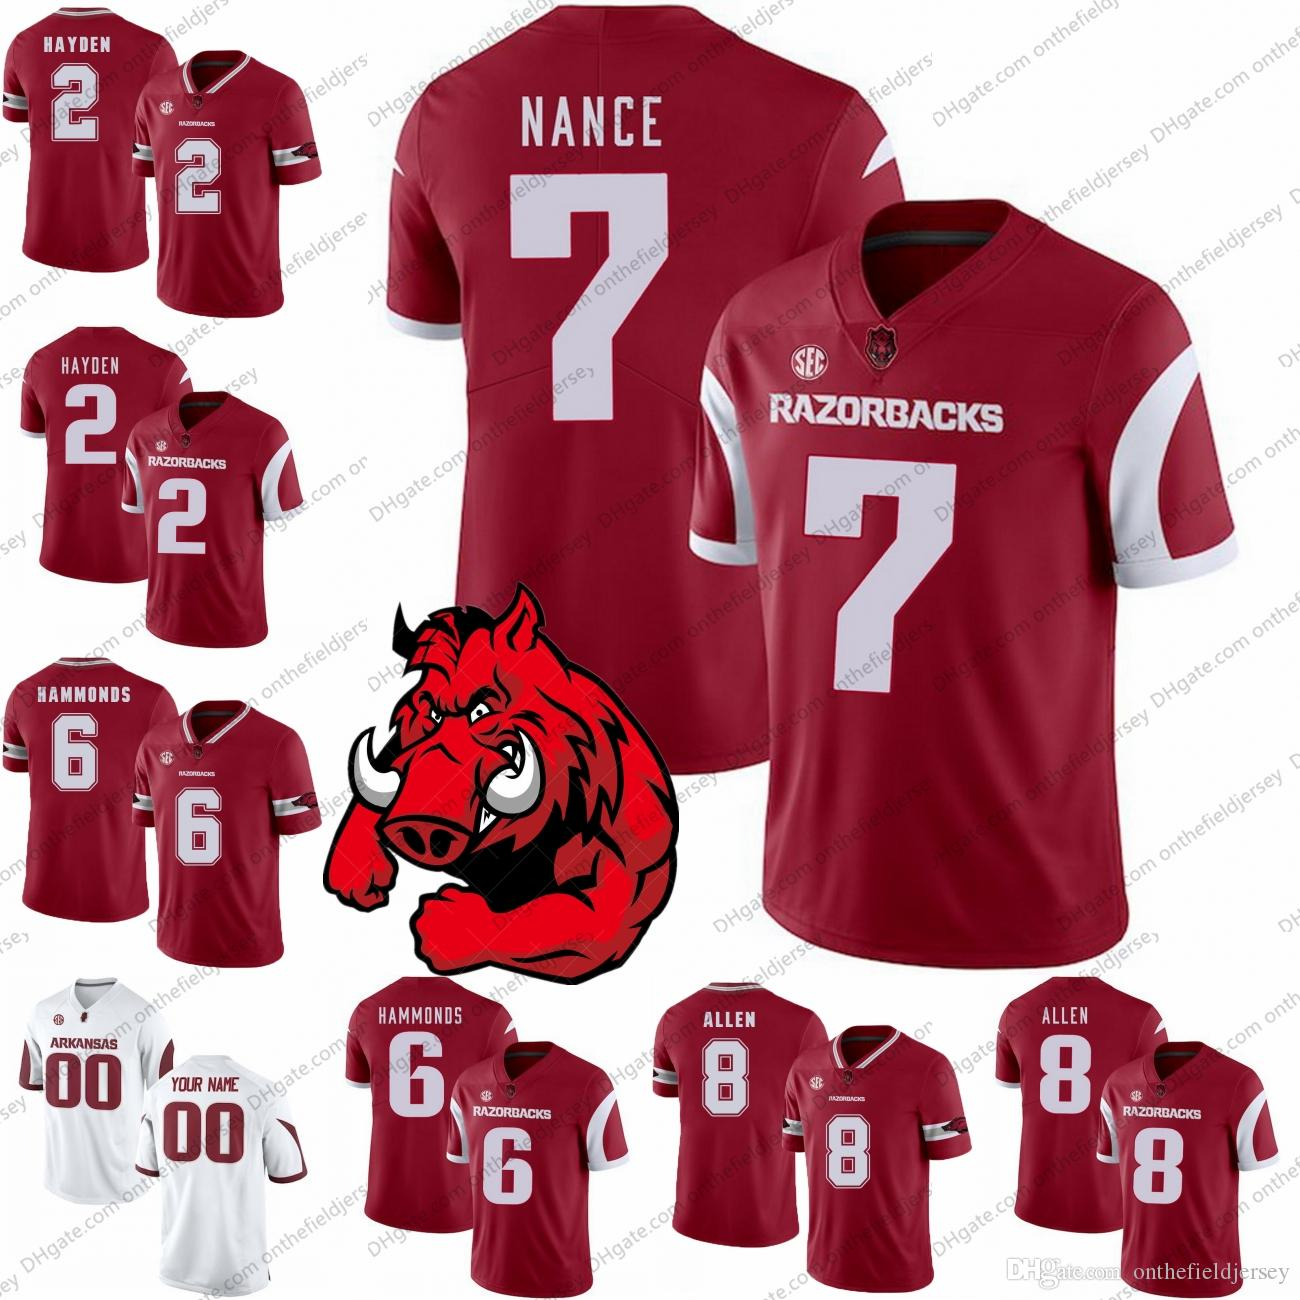 97074cefa Arkansas Razorbacks 2018 NEW STYLE NCAA College Football Jerseys  2 ...